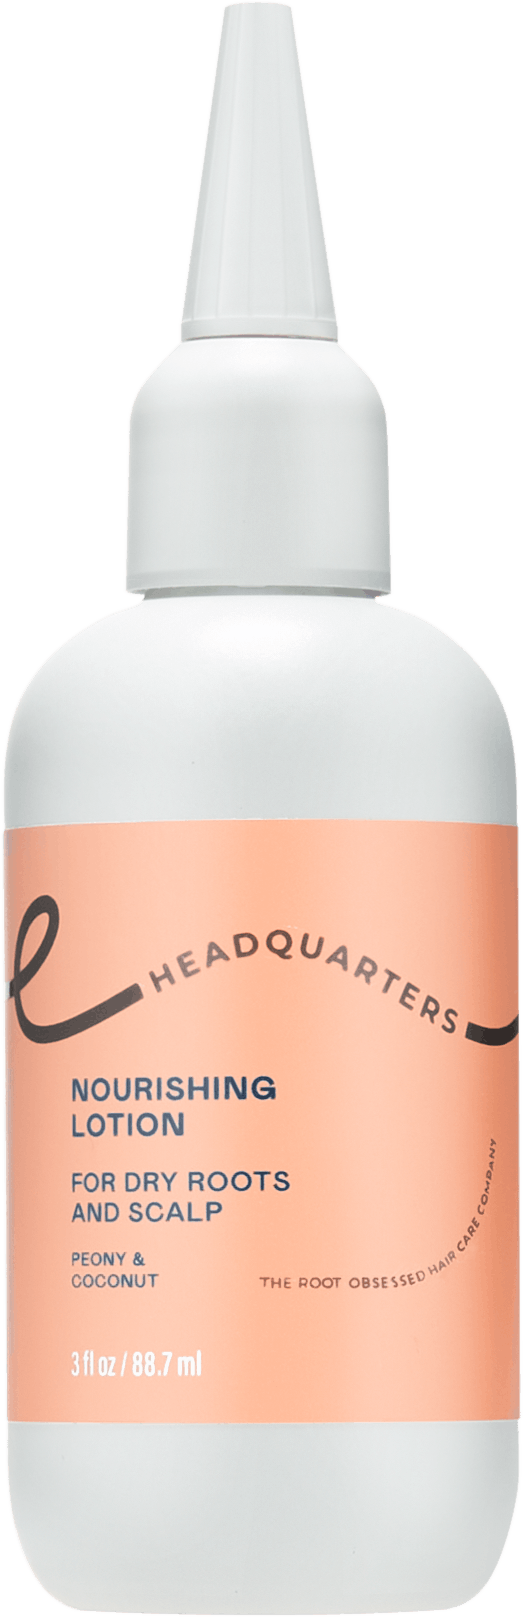 Headquarters Nourishing Lotion Dry scalp care bottle